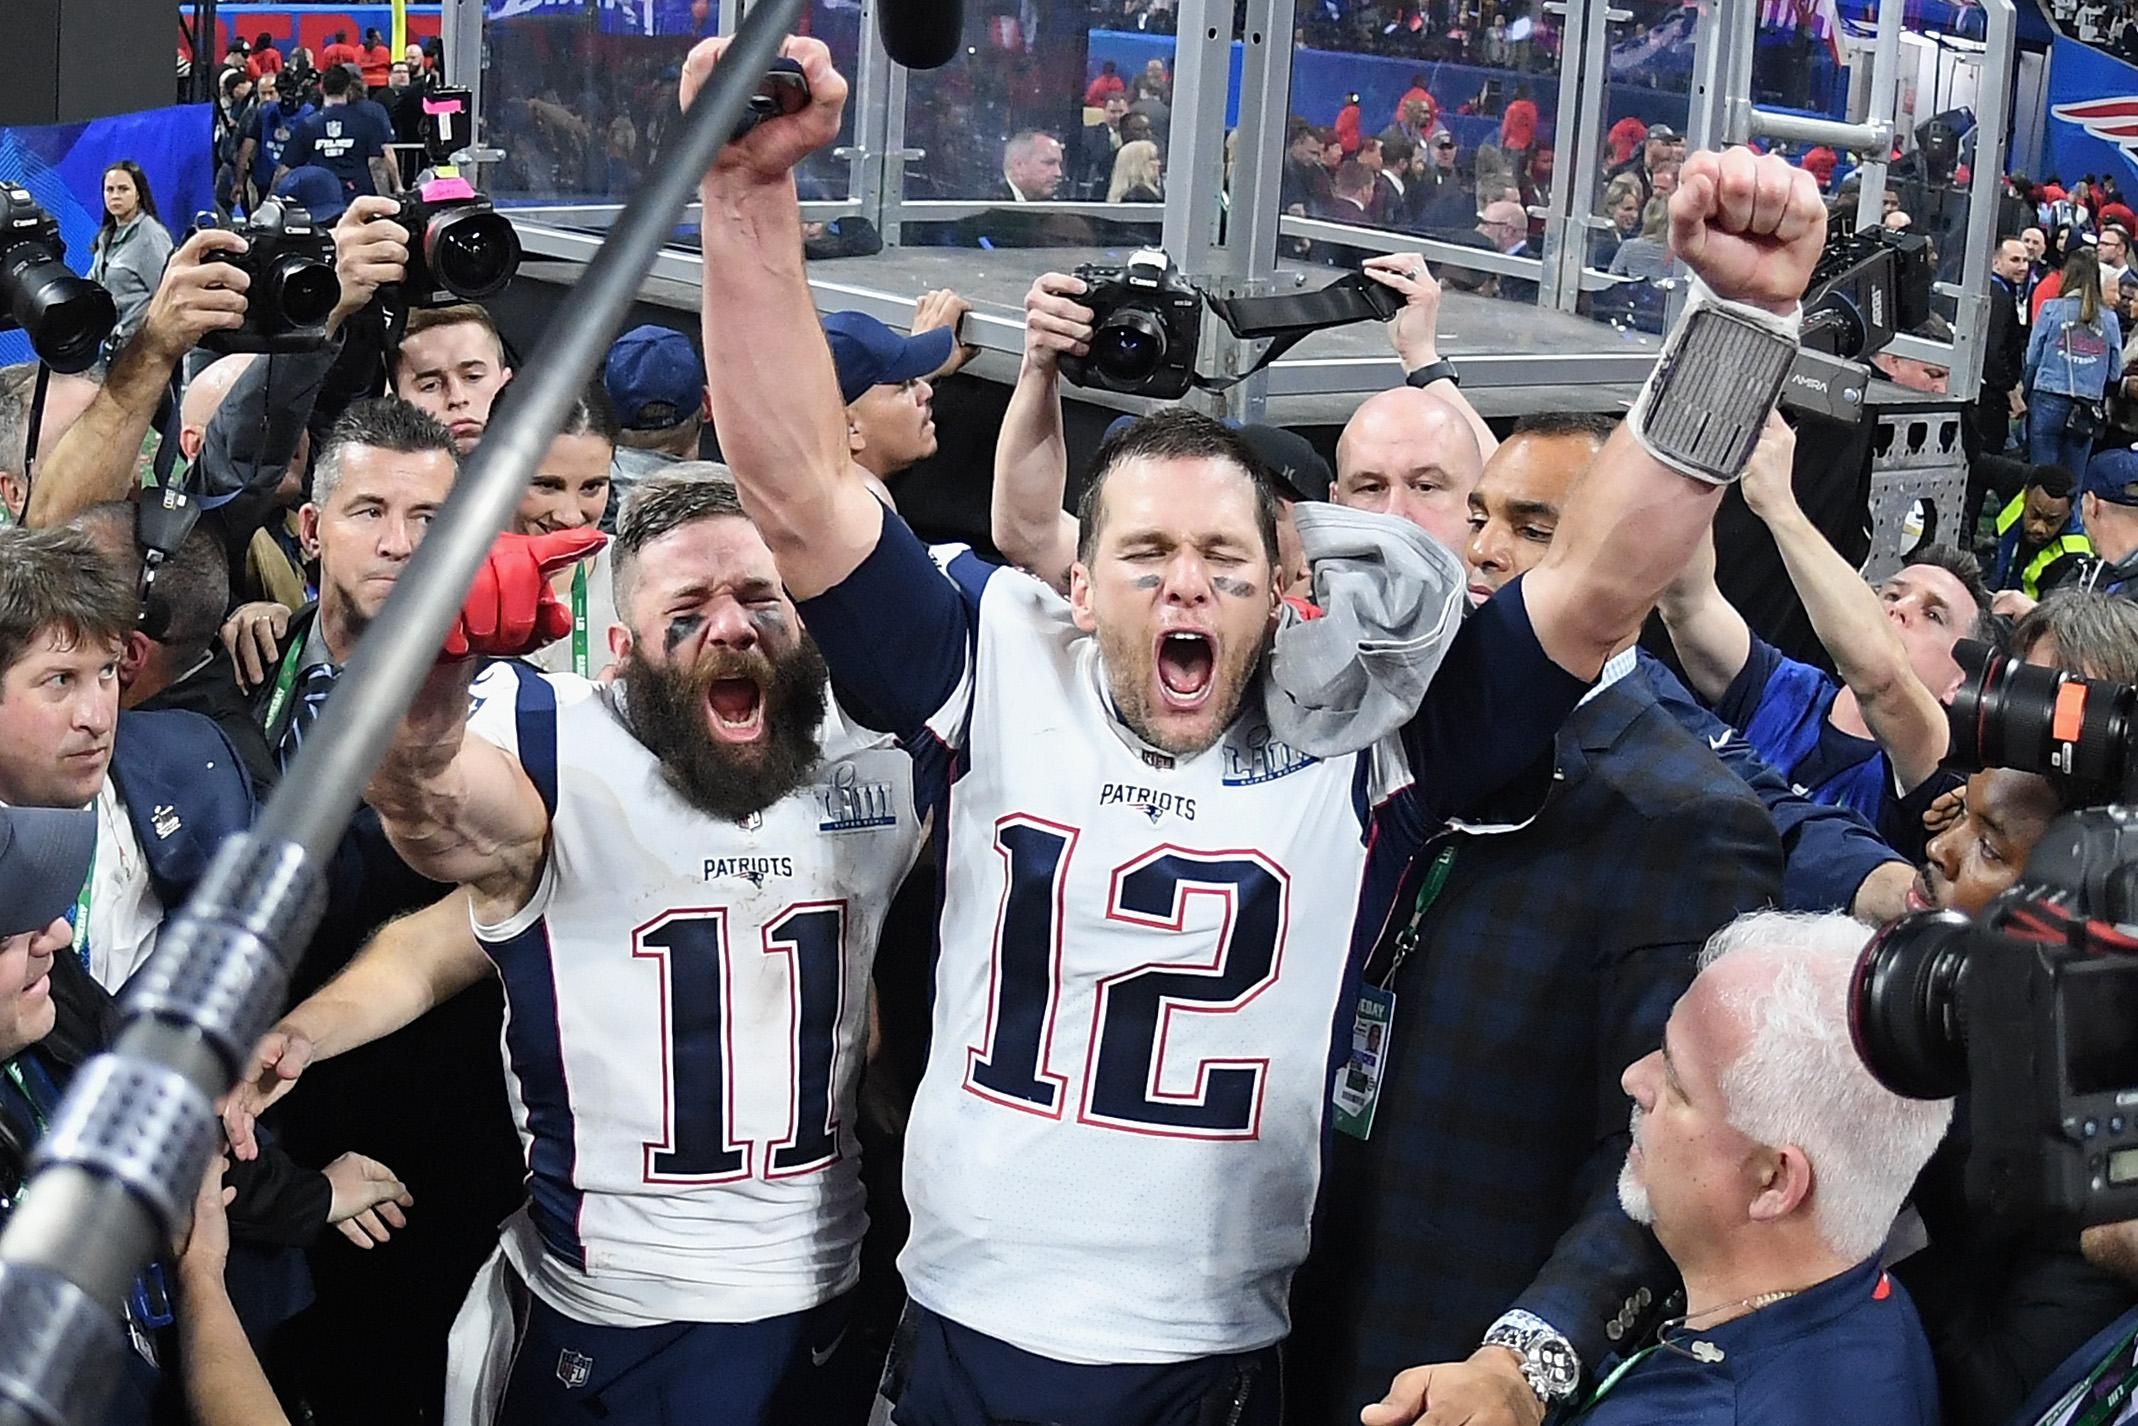 ATLANTA, GA - FEBRUARY 03:  Julian Edelman #11 of the New England Patriots and teammate Tom Brady #12 celebrate at the end of the Super Bowl LIII at Mercedes-Benz Stadium on February 3, 2019 in Atlanta, Georgia. The New England Patriots defeat the Los Angeles Rams 13-3.  (Photo by Harry How/Getty Images)